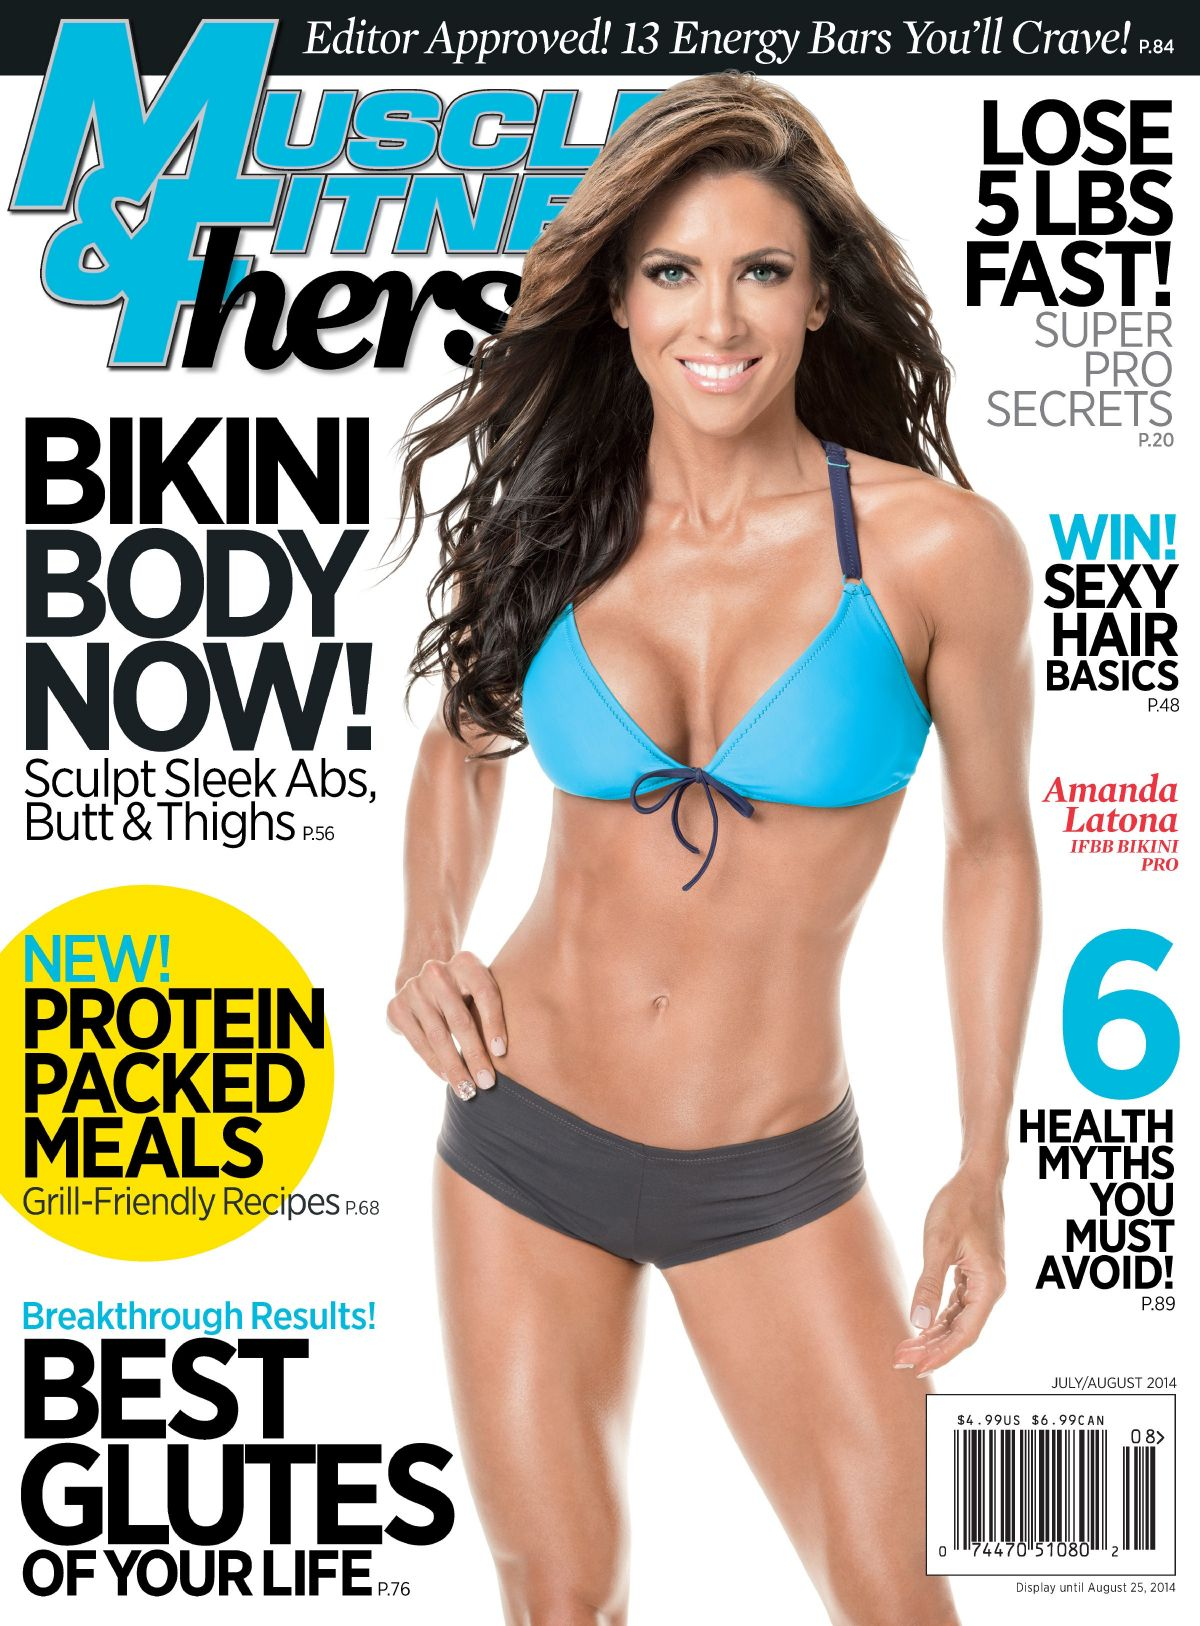 AMANDA LATONA in Muscle and Fitness Hers Magazine, July/August 2014 Issue